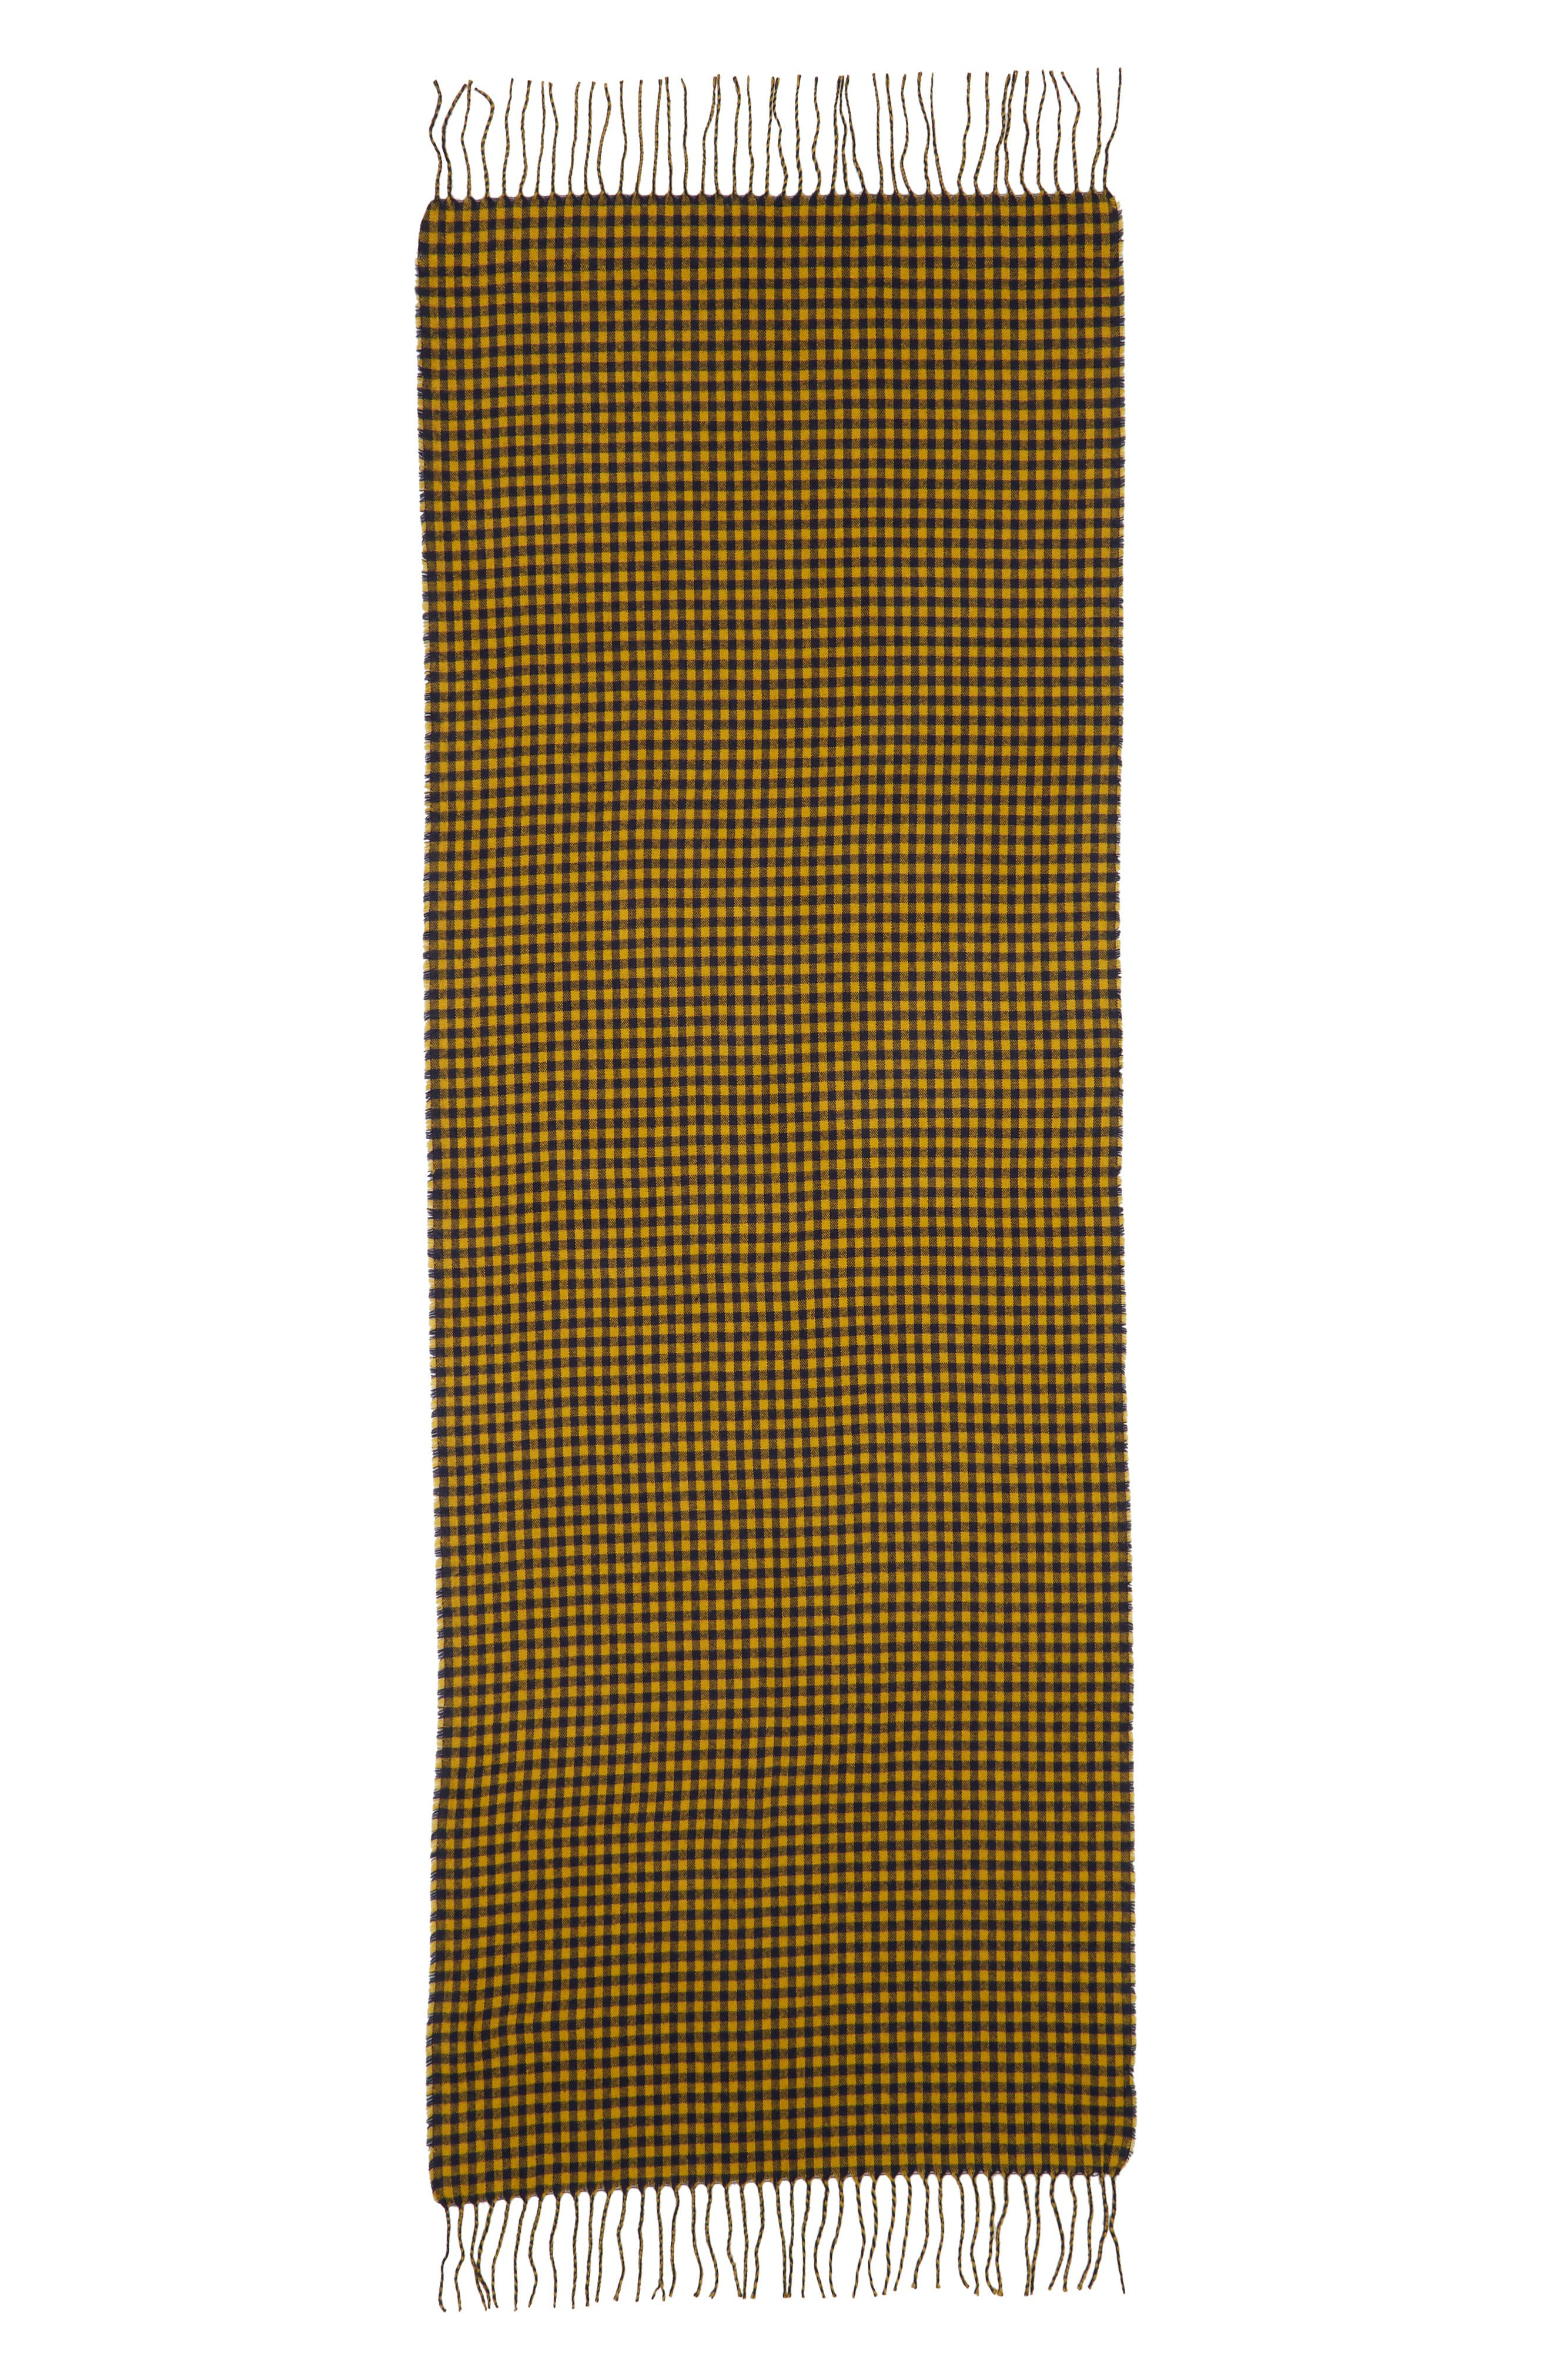 Two-Tone Checkered Scarf,                             Alternate thumbnail 2, color,                             YELLOW MULTI